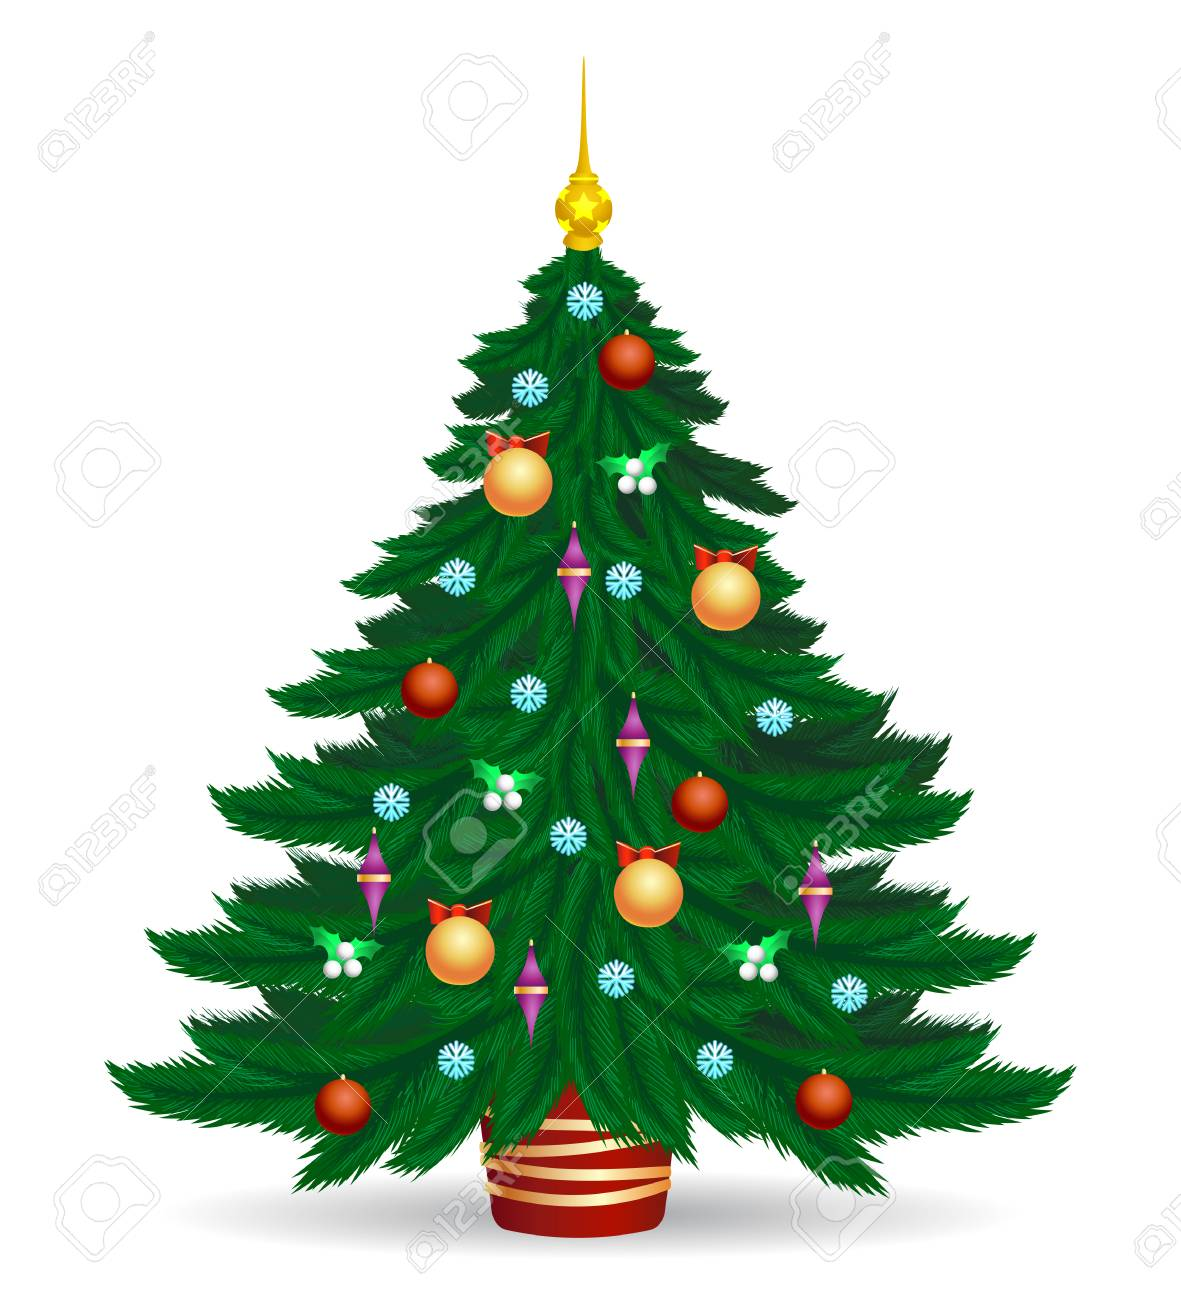 Christmas Tree Vector Image.Stock Illustration